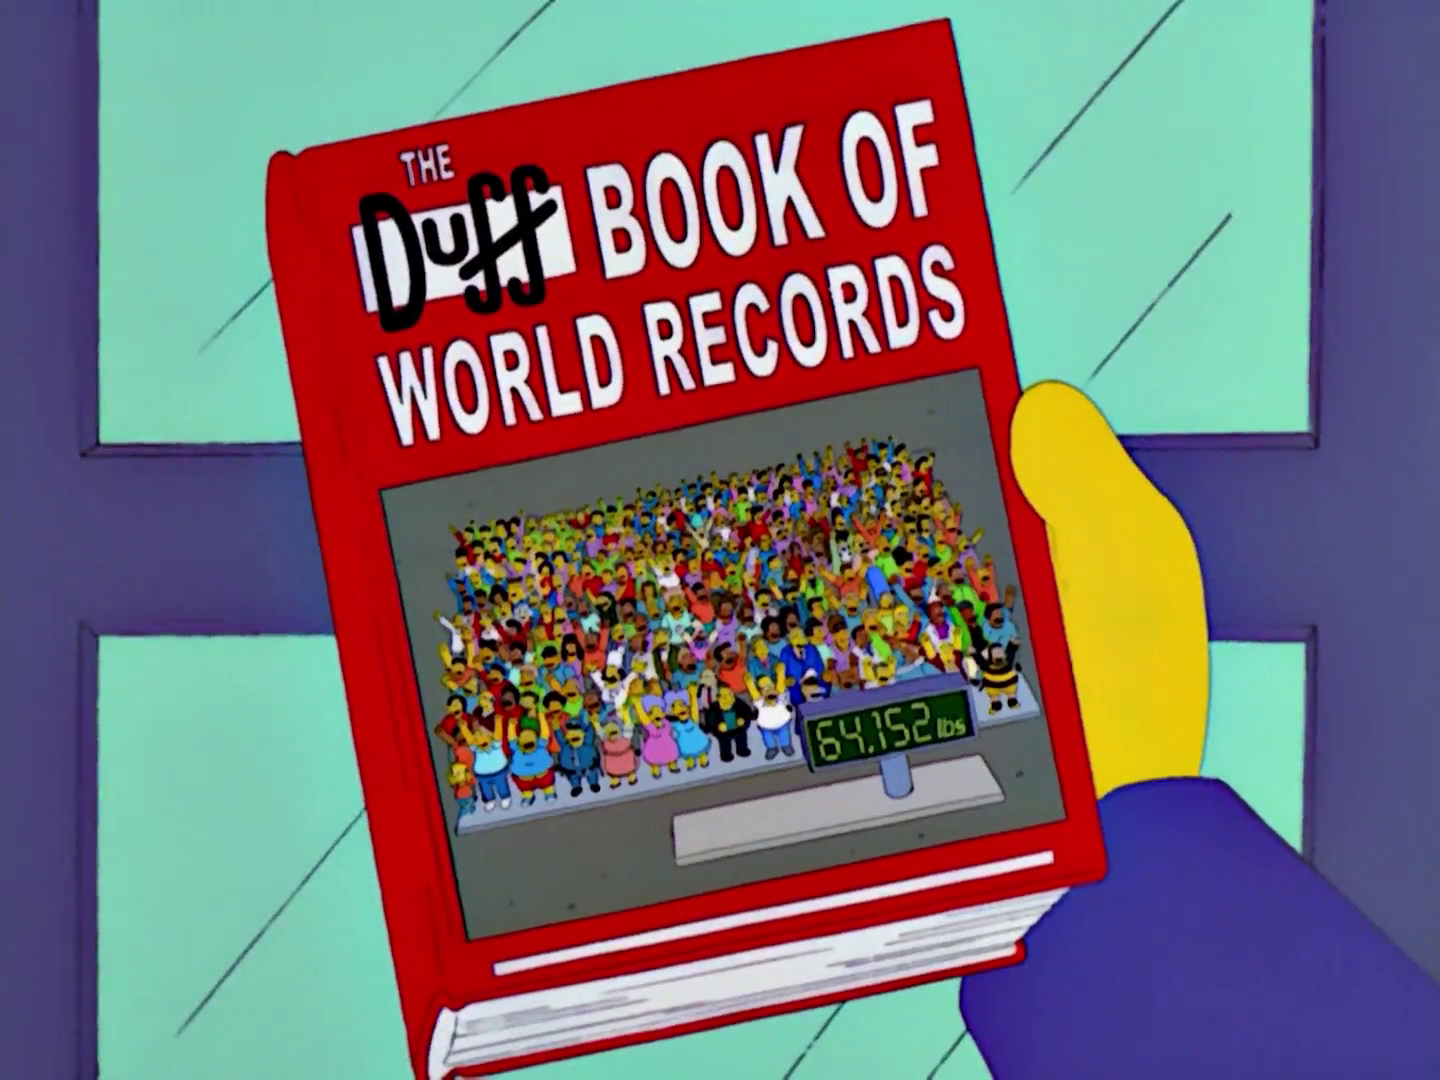 Duff book of world records.png